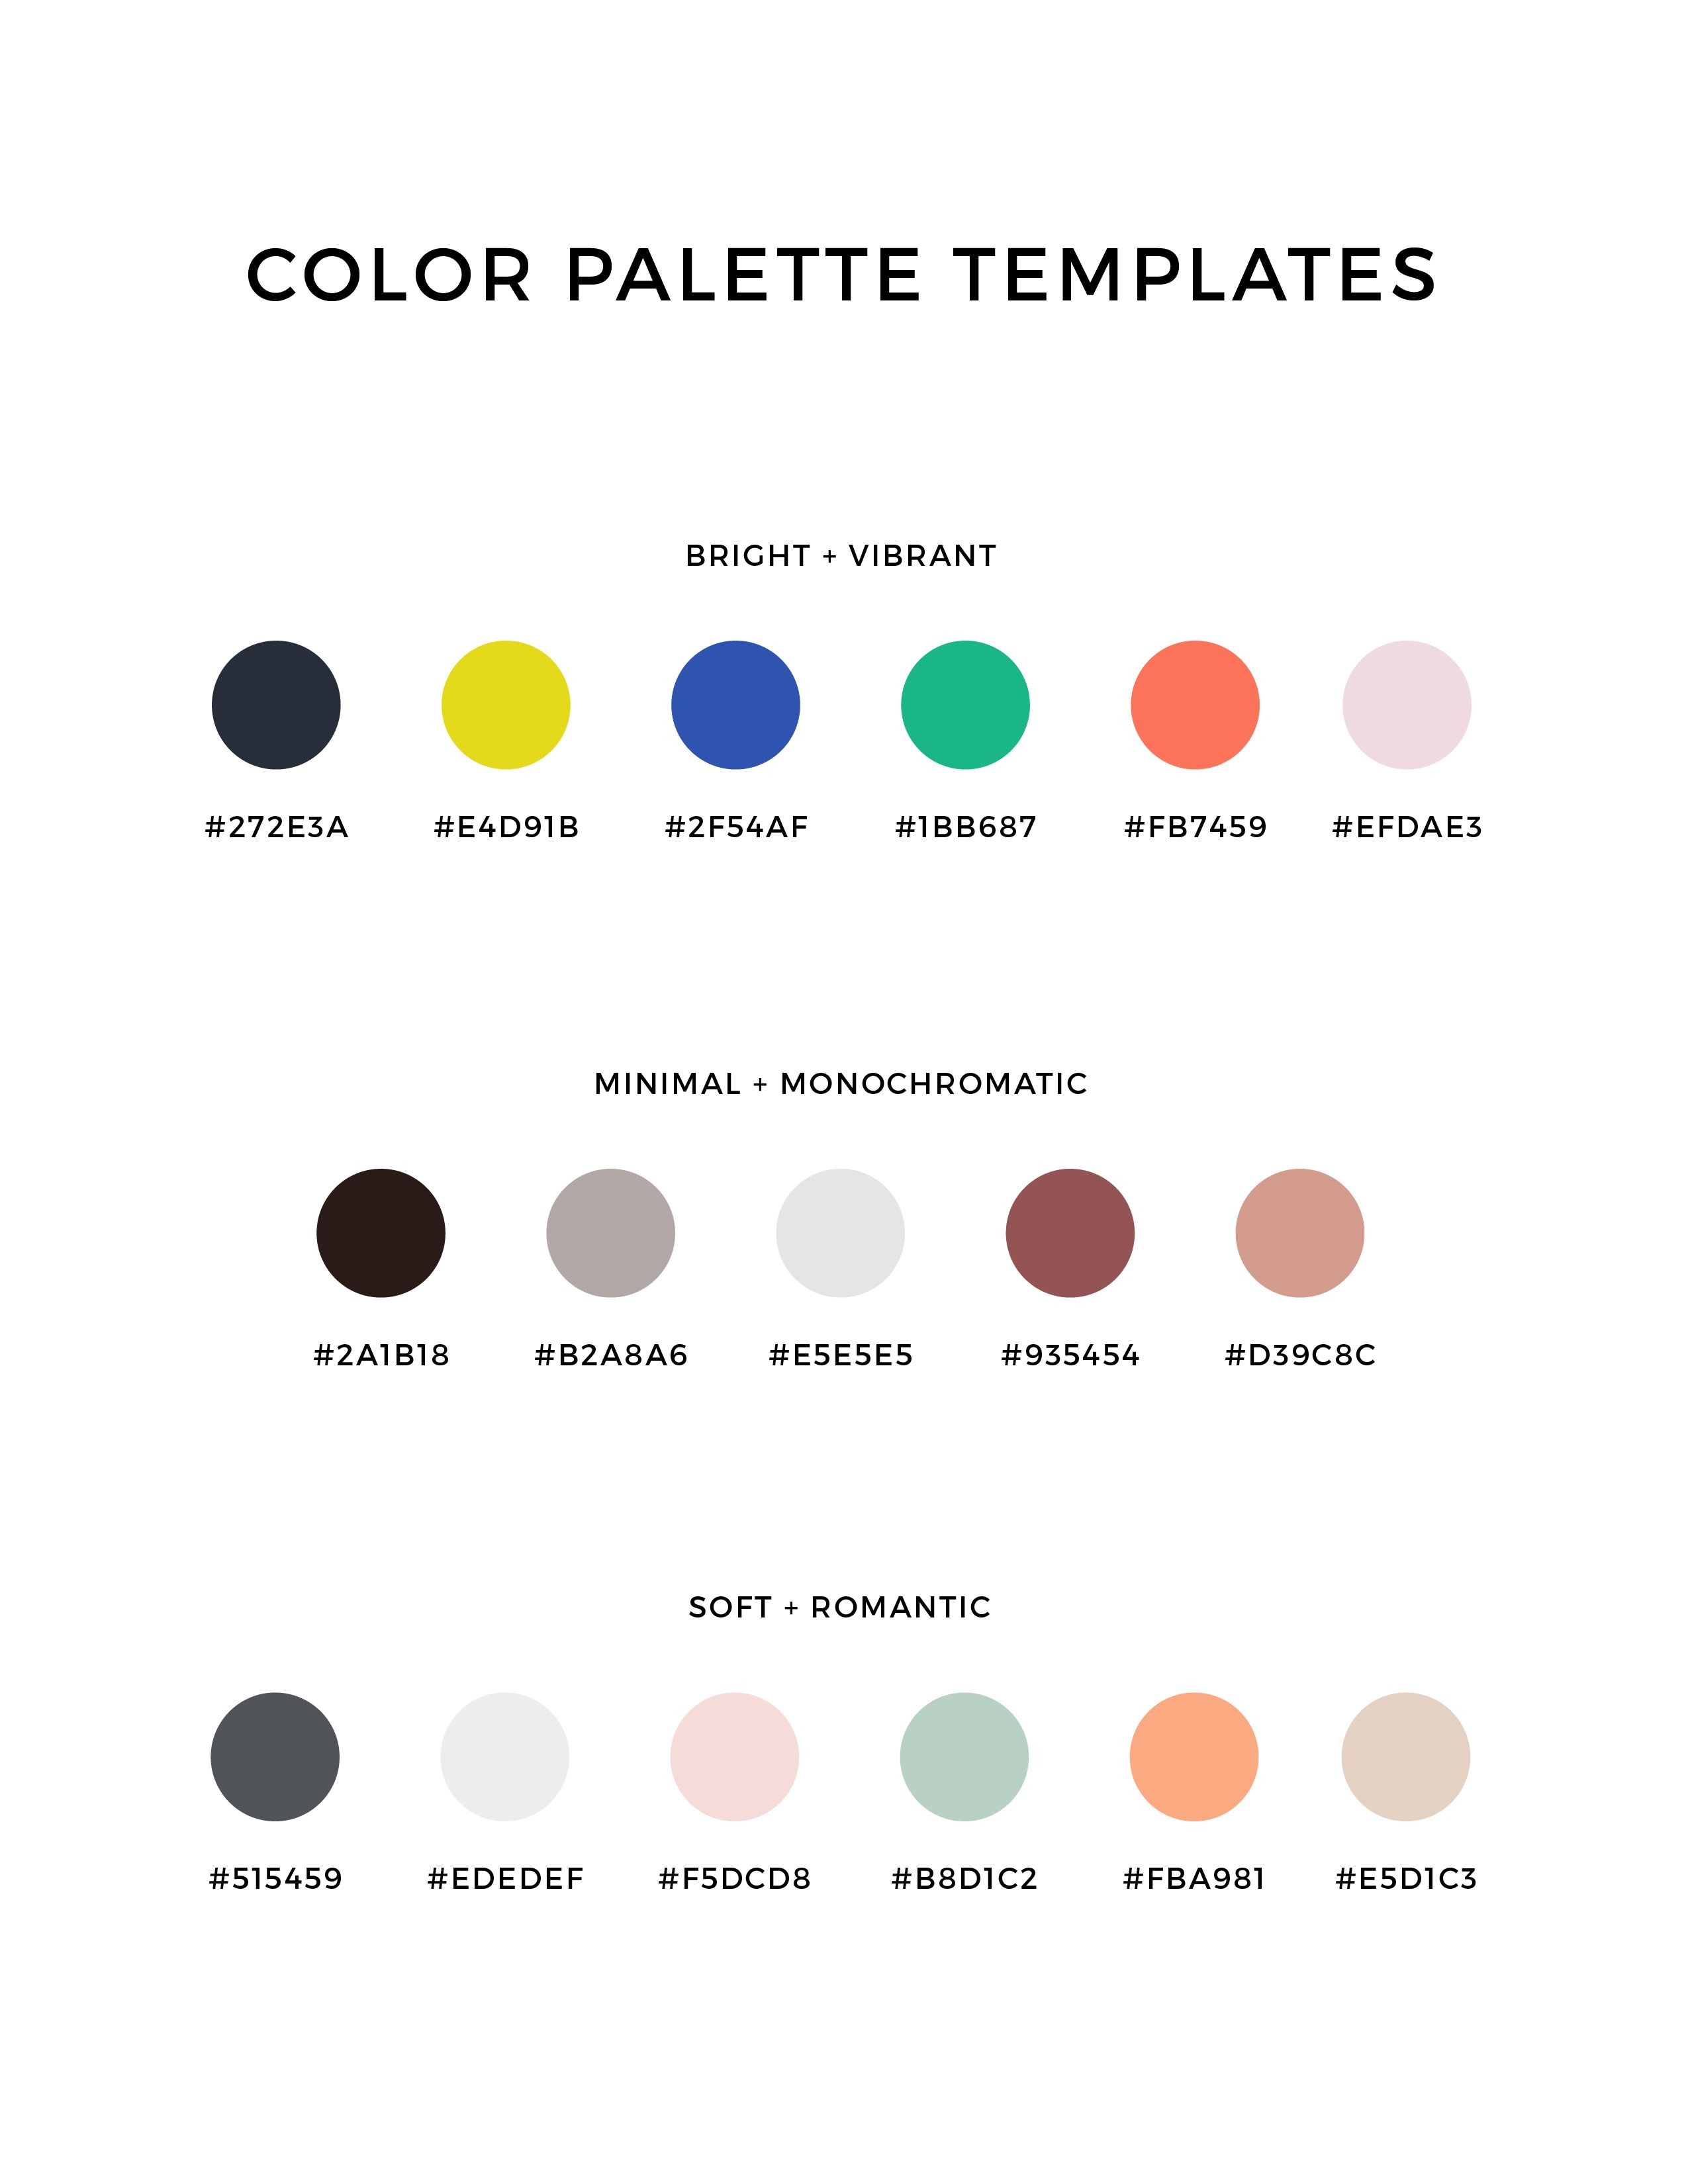 How To Choose The Right Color Palette For Your Business Color Palette Brand Colors Inspiration Brand Colors